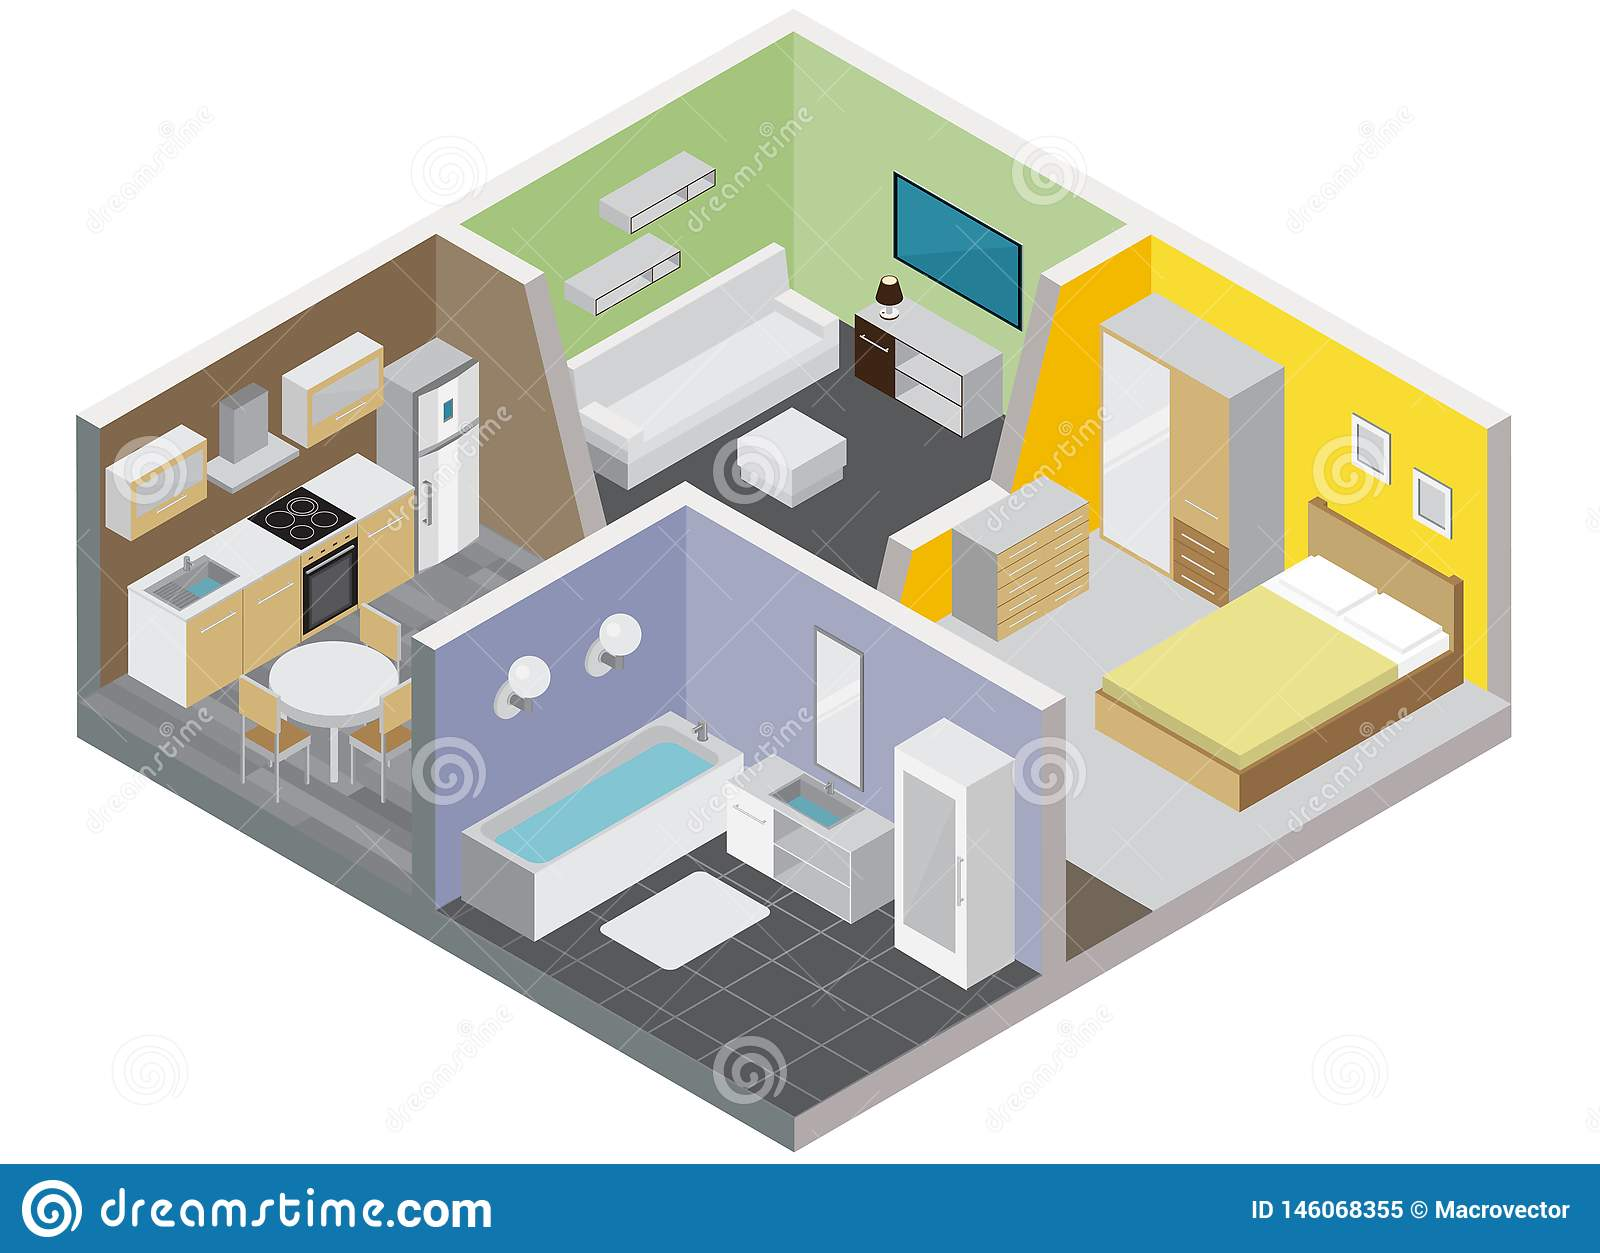 Two Rooms Apartment Design Concept Stock Vector - Illustration of